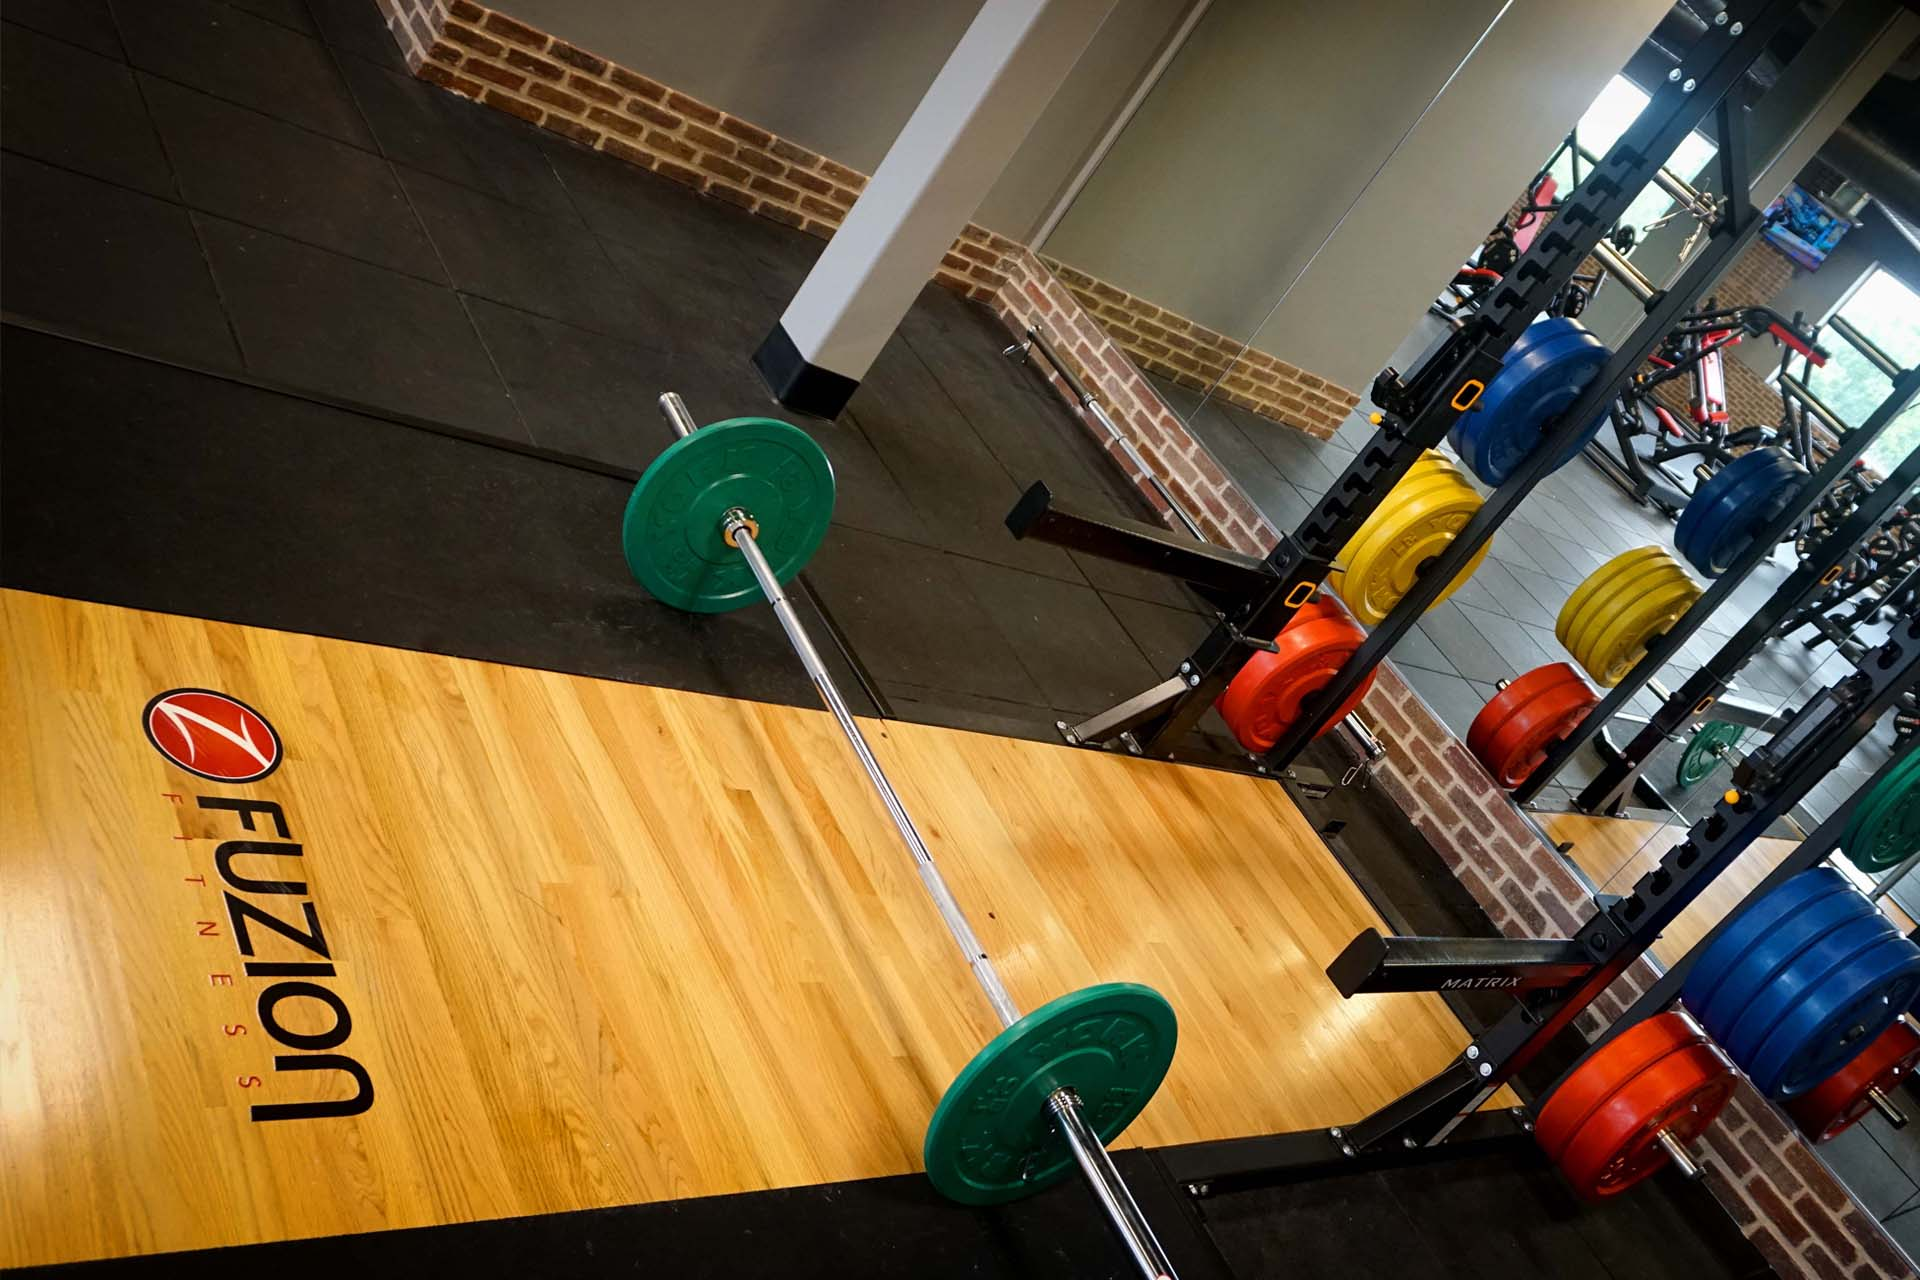 weight-training-equipment-at-fitness-center-for-strength-training